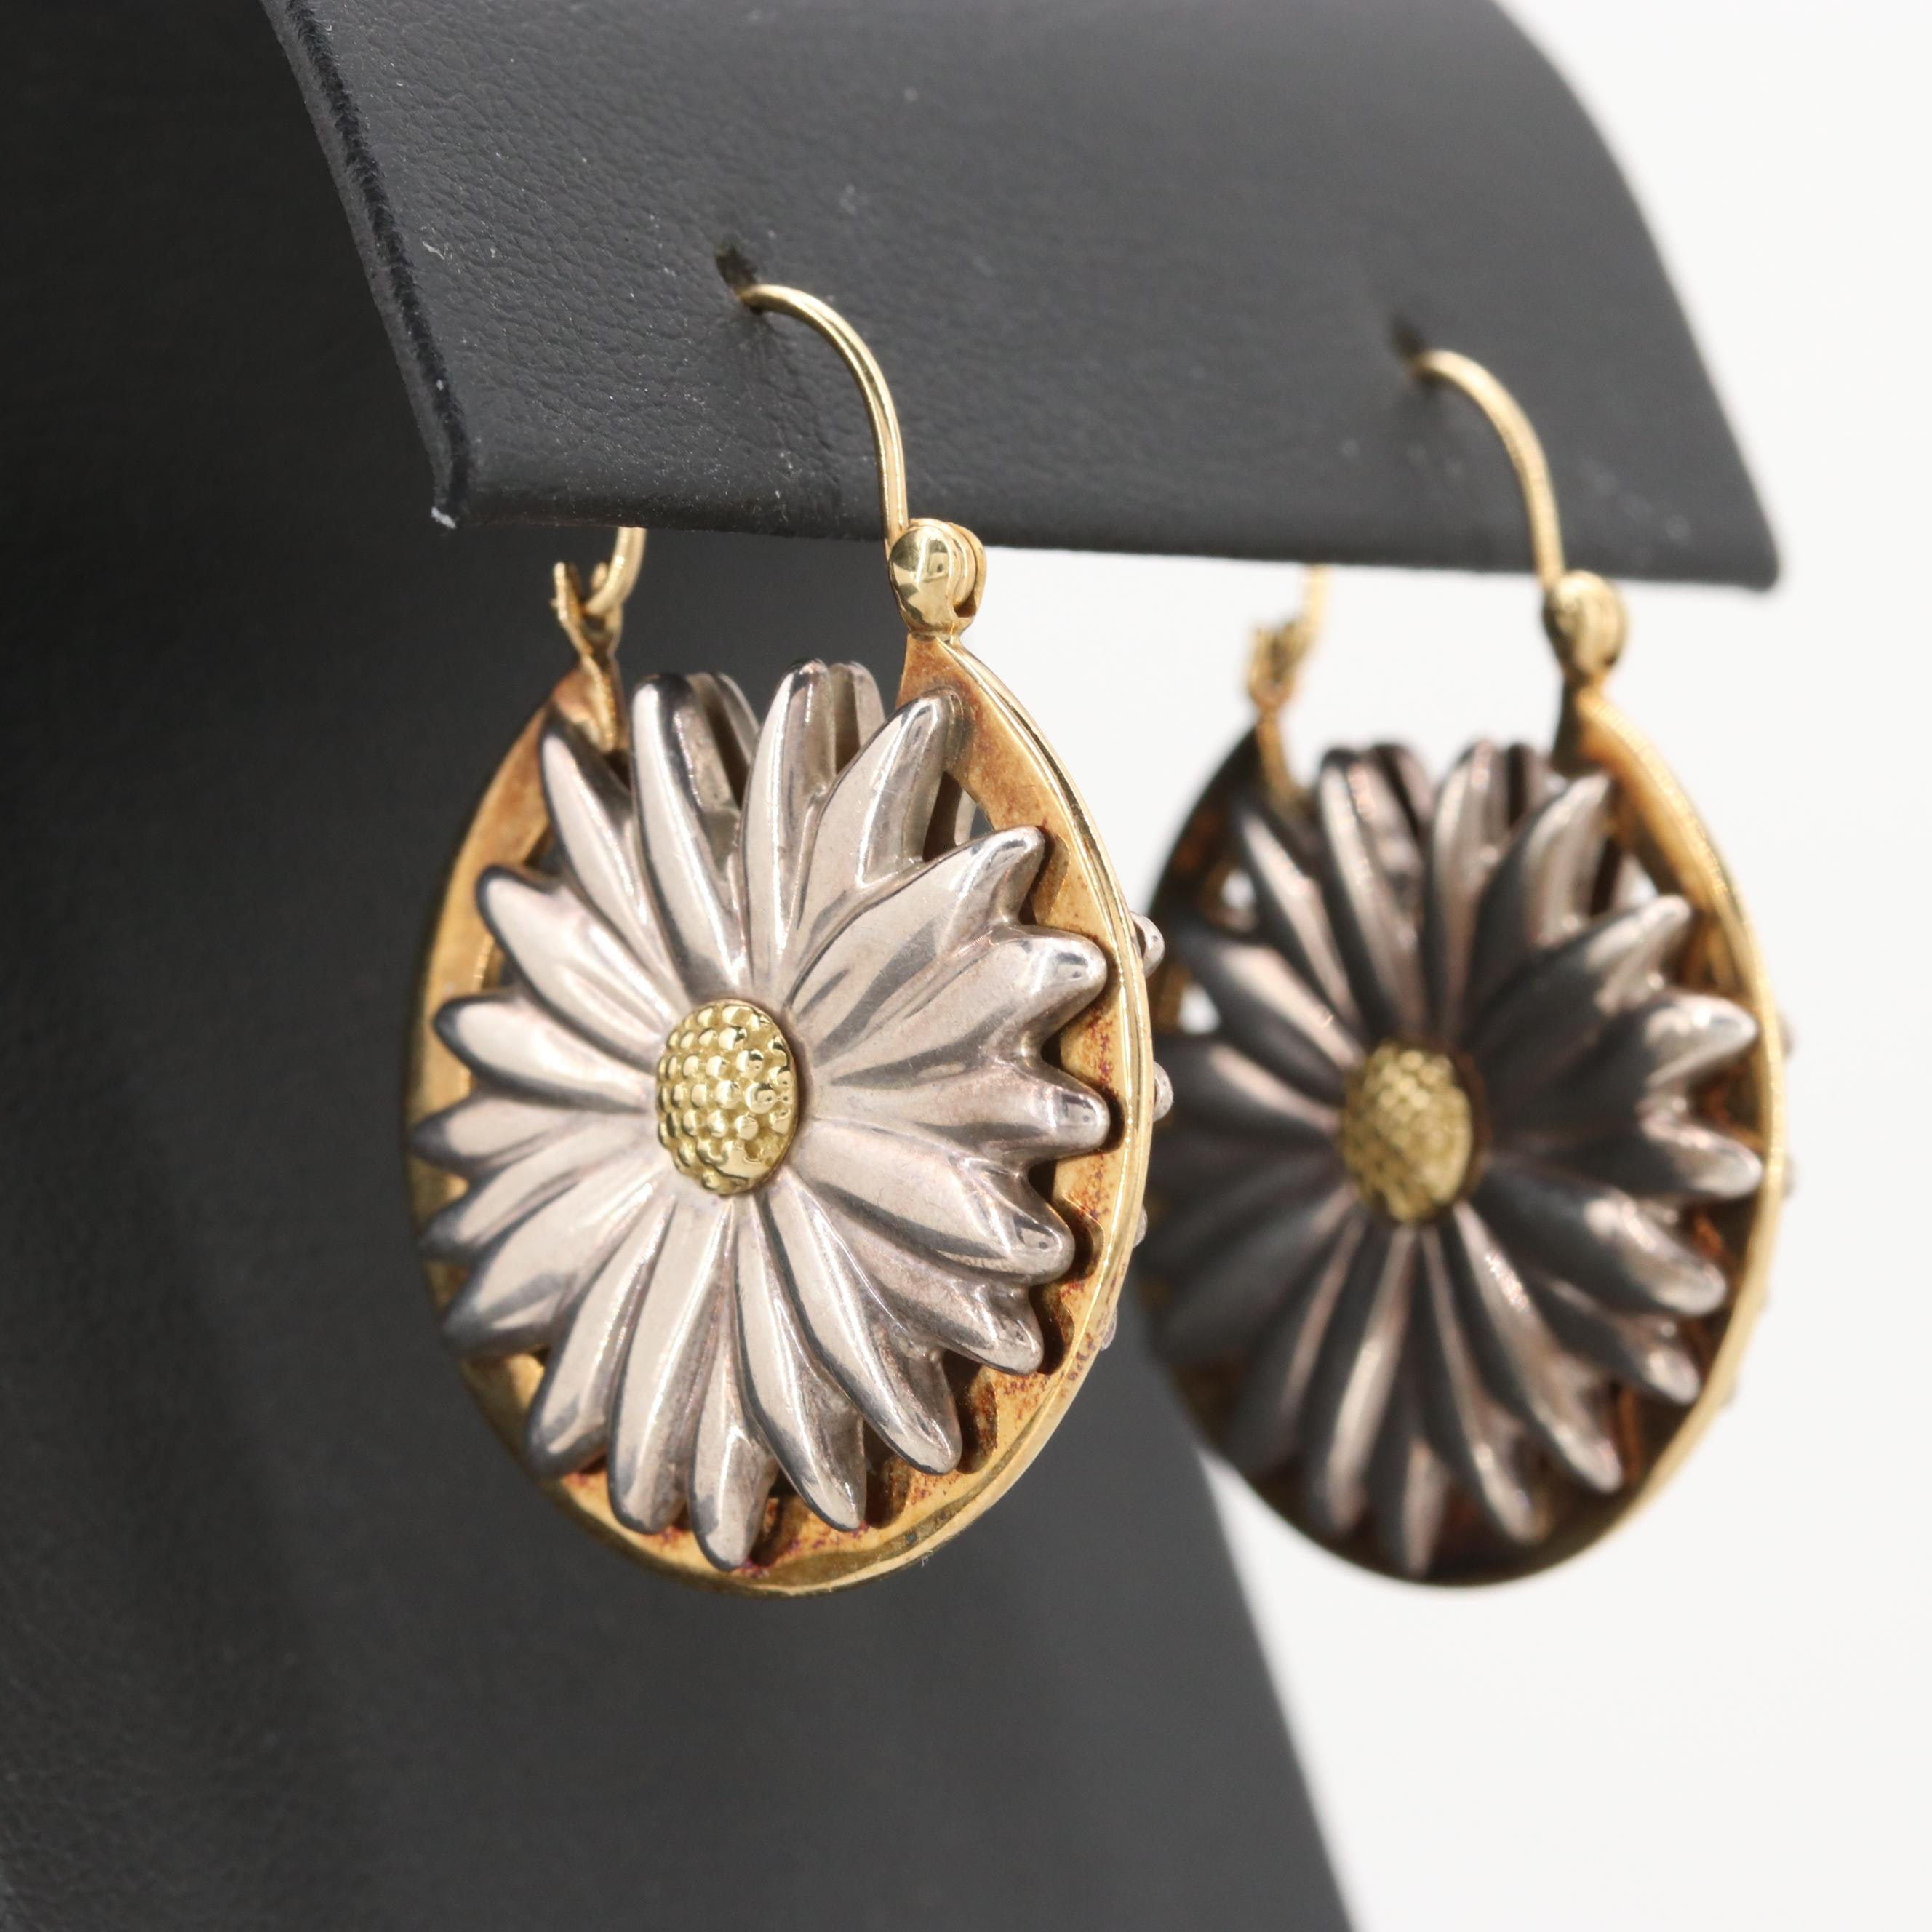 Tiffany & Co. Sterling Silver Earrings with 18K Yellow Gold Accents